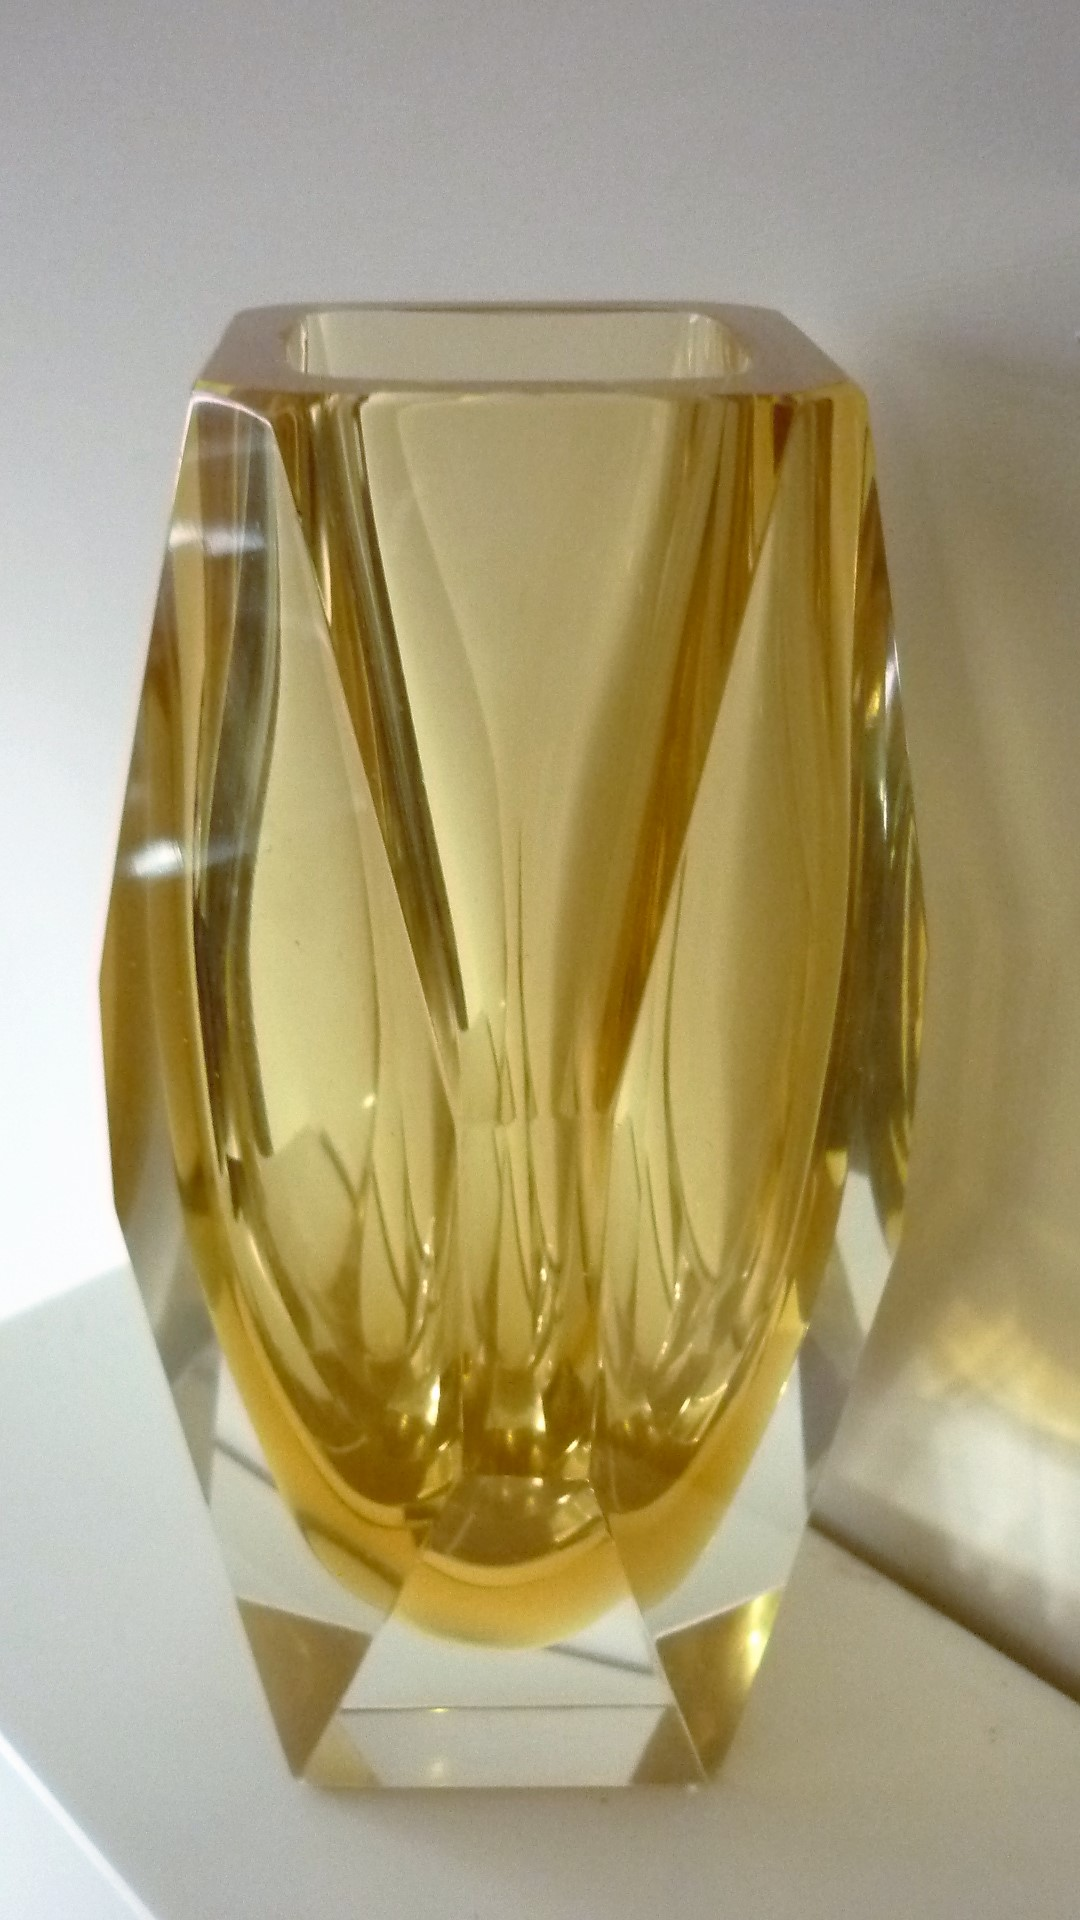 Light Amber Murano Mandruzzato glass vase.